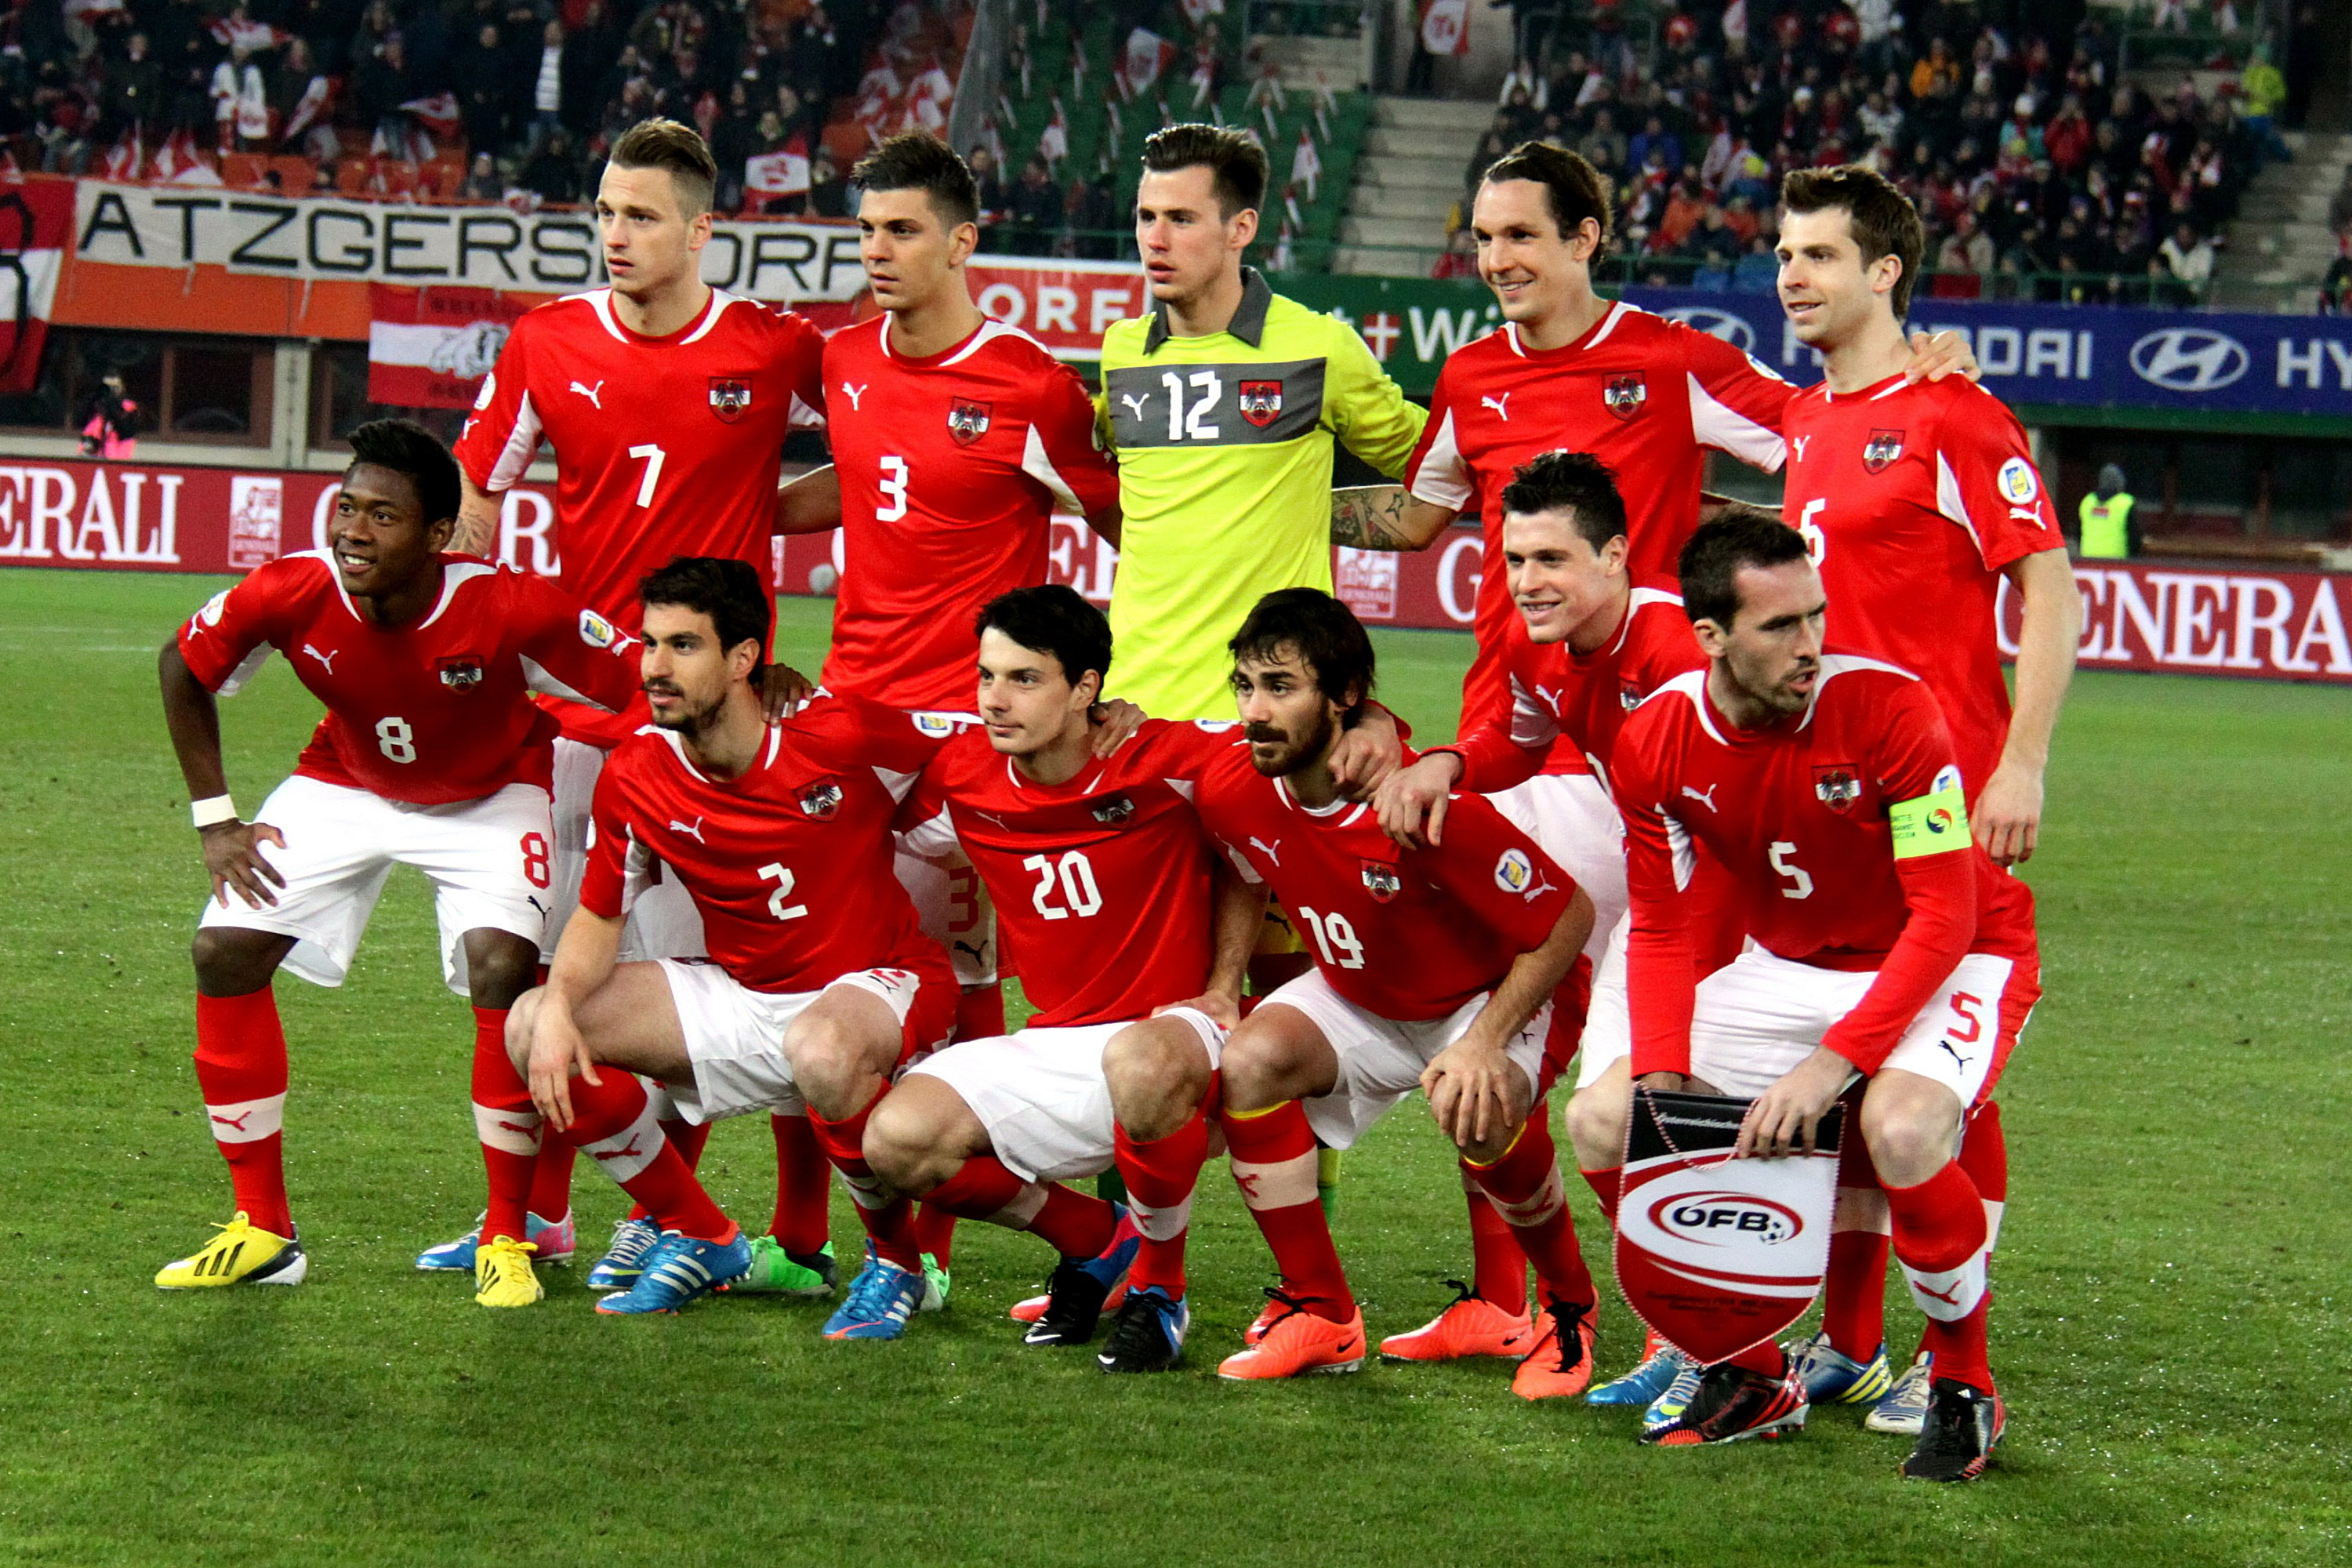 https://upload.wikimedia.org/wikipedia/commons/e/ed/FIFA_WC-qualification_2014_-_Austria_vs_Faroe_Islands_2013-03-22_%2831%29.jpg